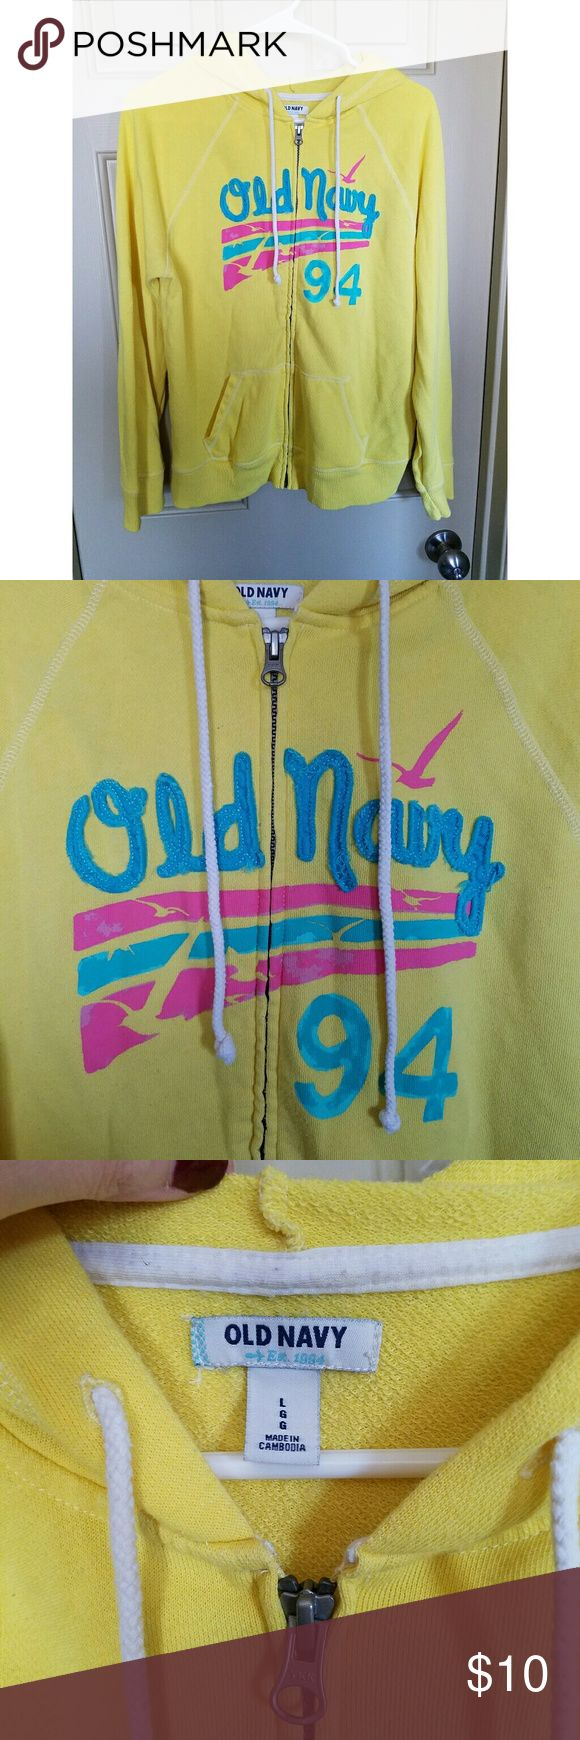 Old Navy Large yellow jacket Old Navy Large yellow zip up jacket! Used but still in good condition! Old Navy Jackets & Coats